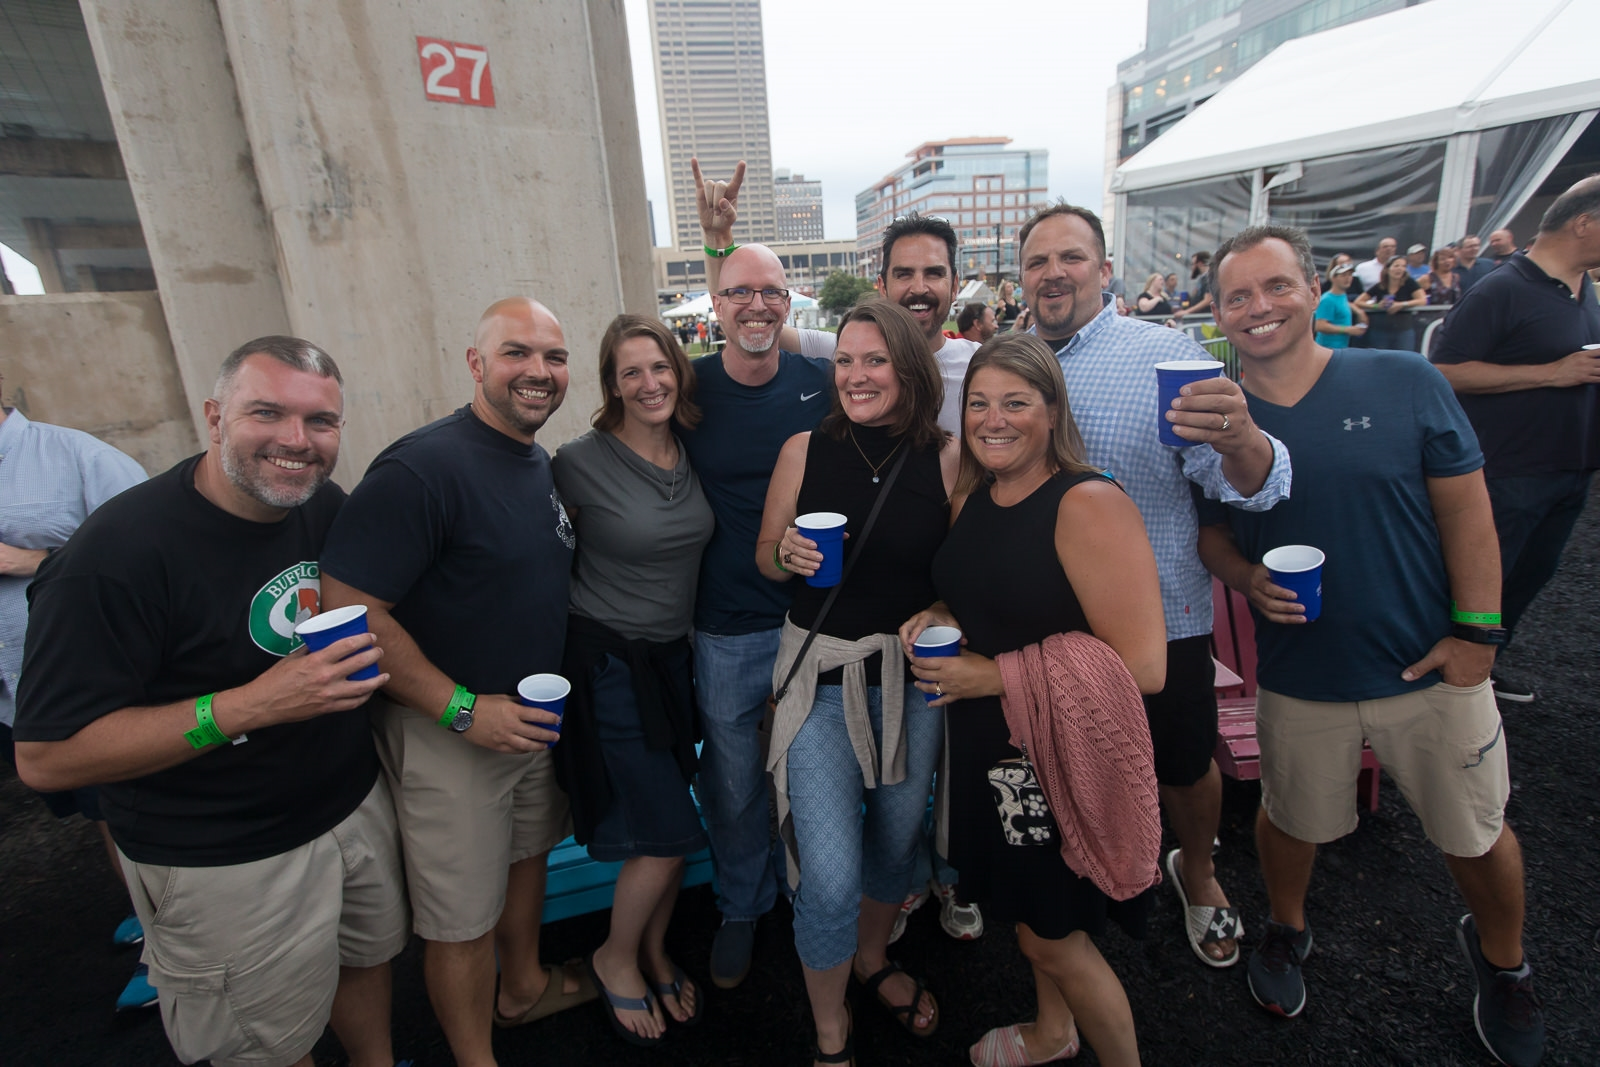 Boston ska band Mighty Mighty Bosstones, with Lowest of the Low as support, entertained at Canalside Live on Friday, Aug. 17, 2018. See the local fans who headed to the waterfront for the show.